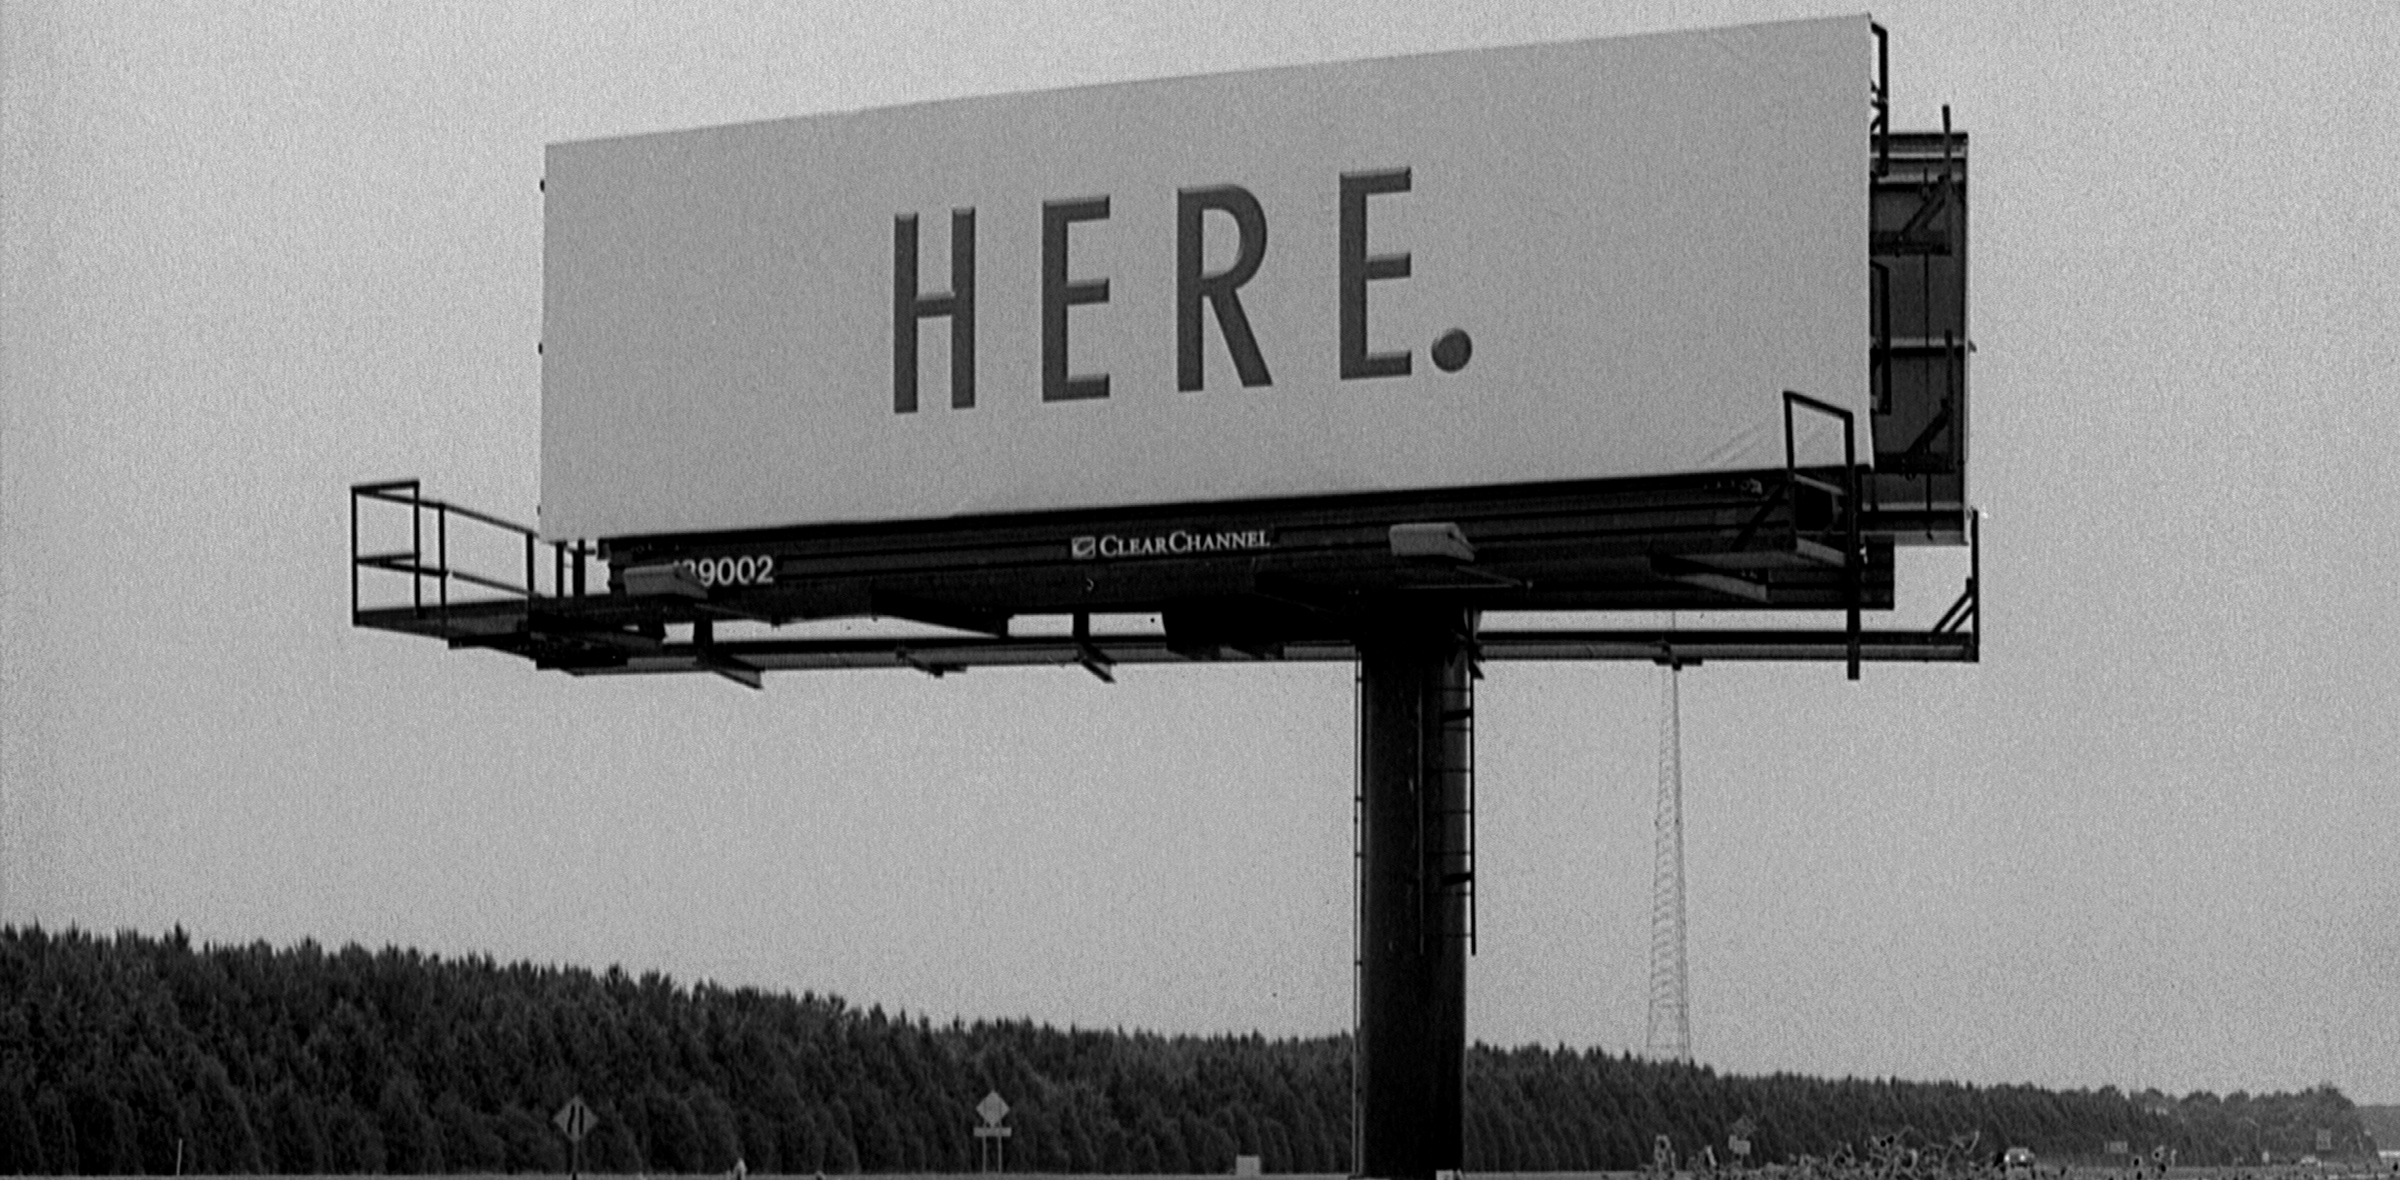 """A billboard that reads """"Here."""""""